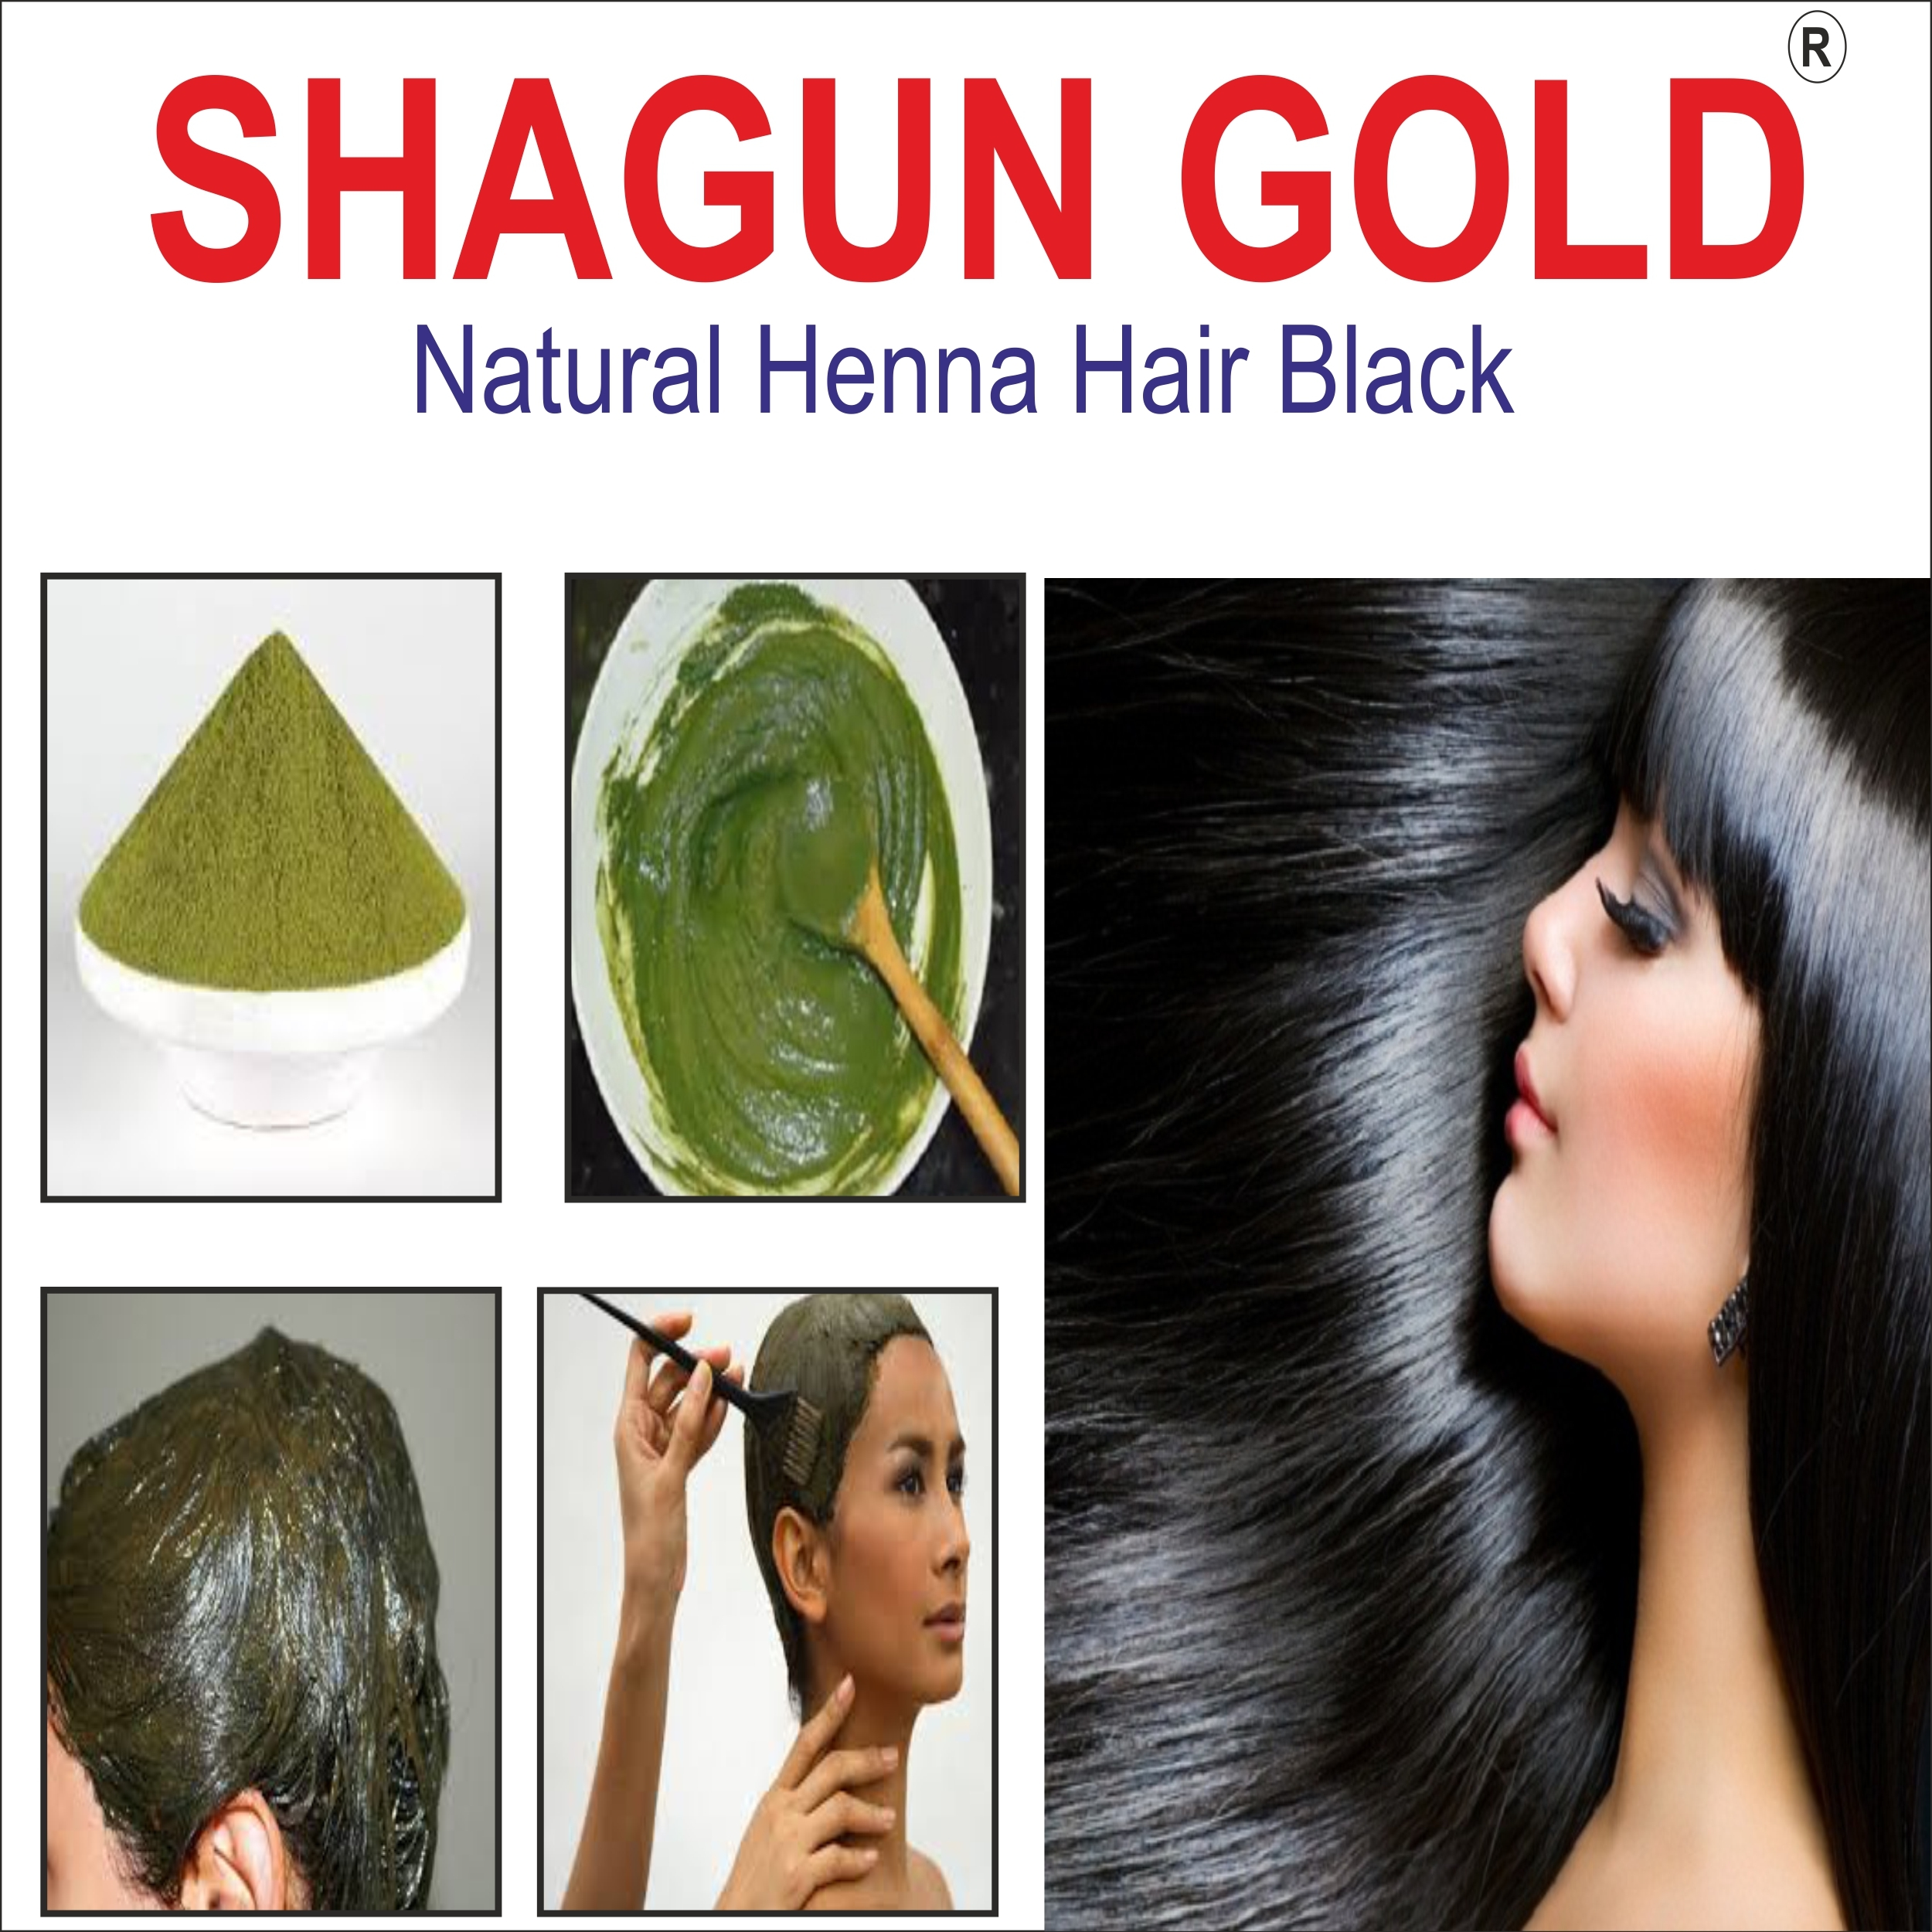 Halal Cosmetics Brands Hair Henna Black For Wholes Halal Cosmetics